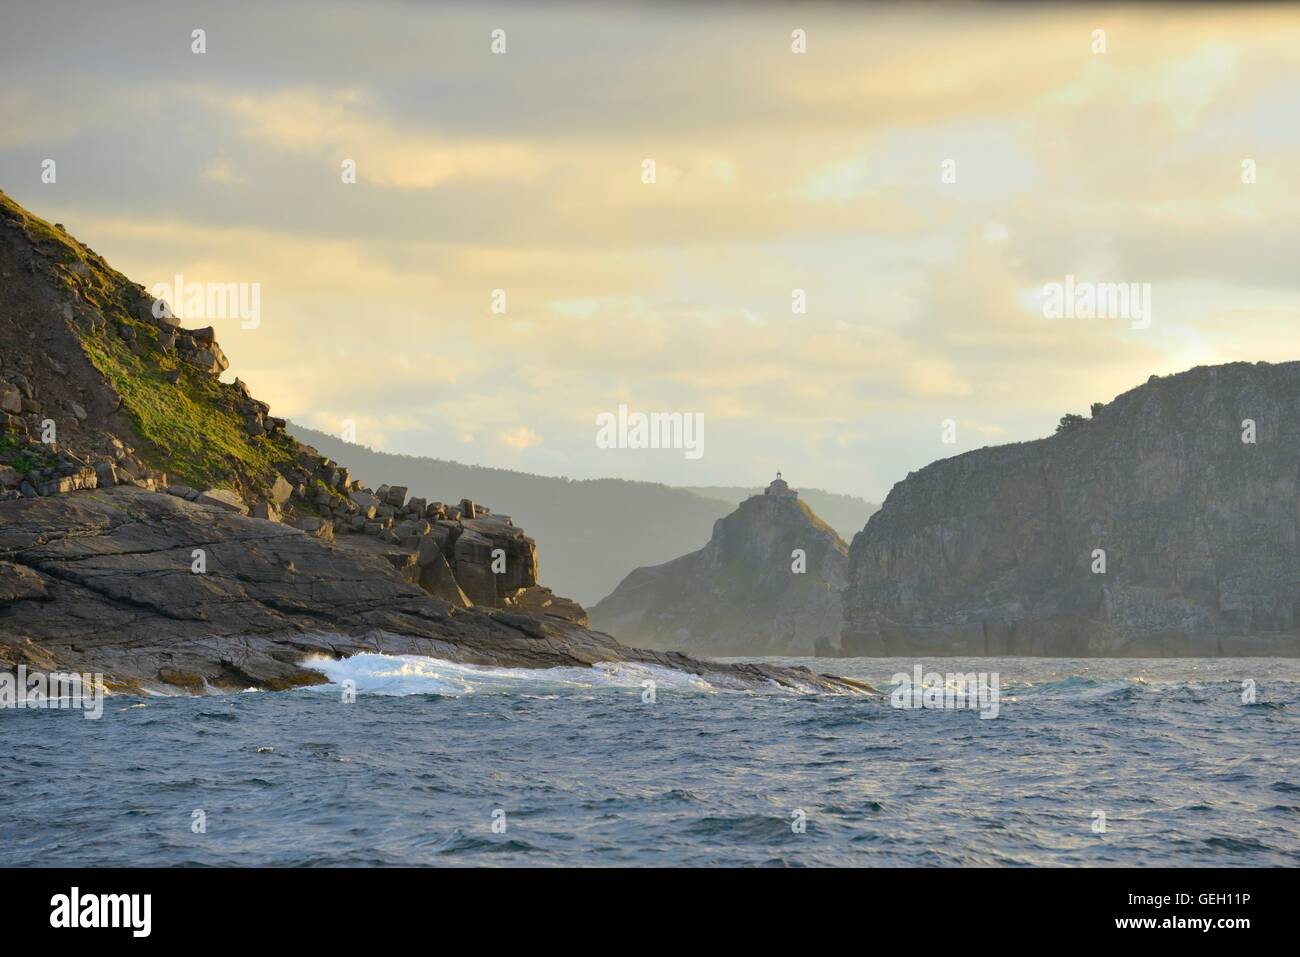 The famous hermitage of San Juan De Gaztelugatxe (Vizcaya, Basque-country), and its beautiful surroundings - Stock Image